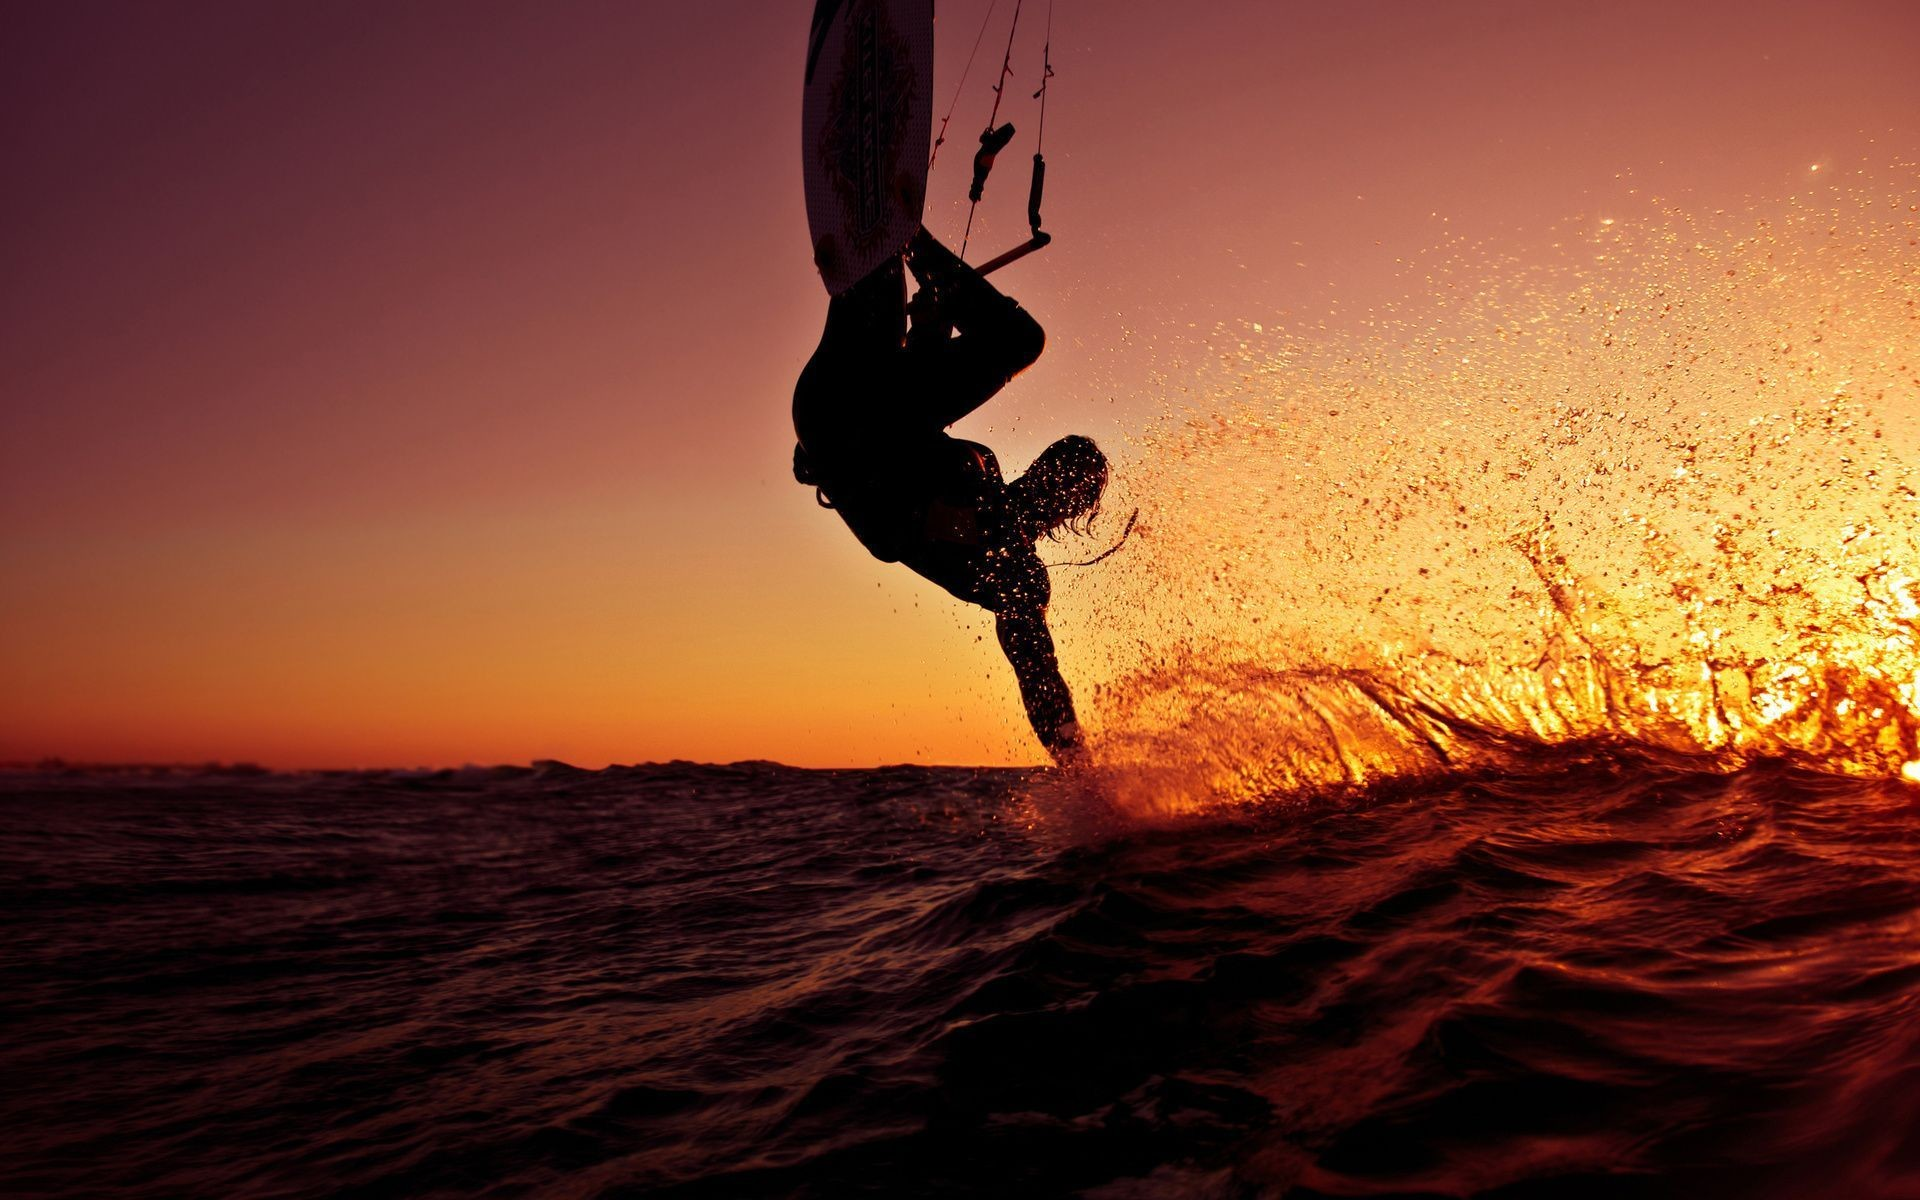 Surfing wallpapers by GlobalSurfers, dekstop surf pictures windows